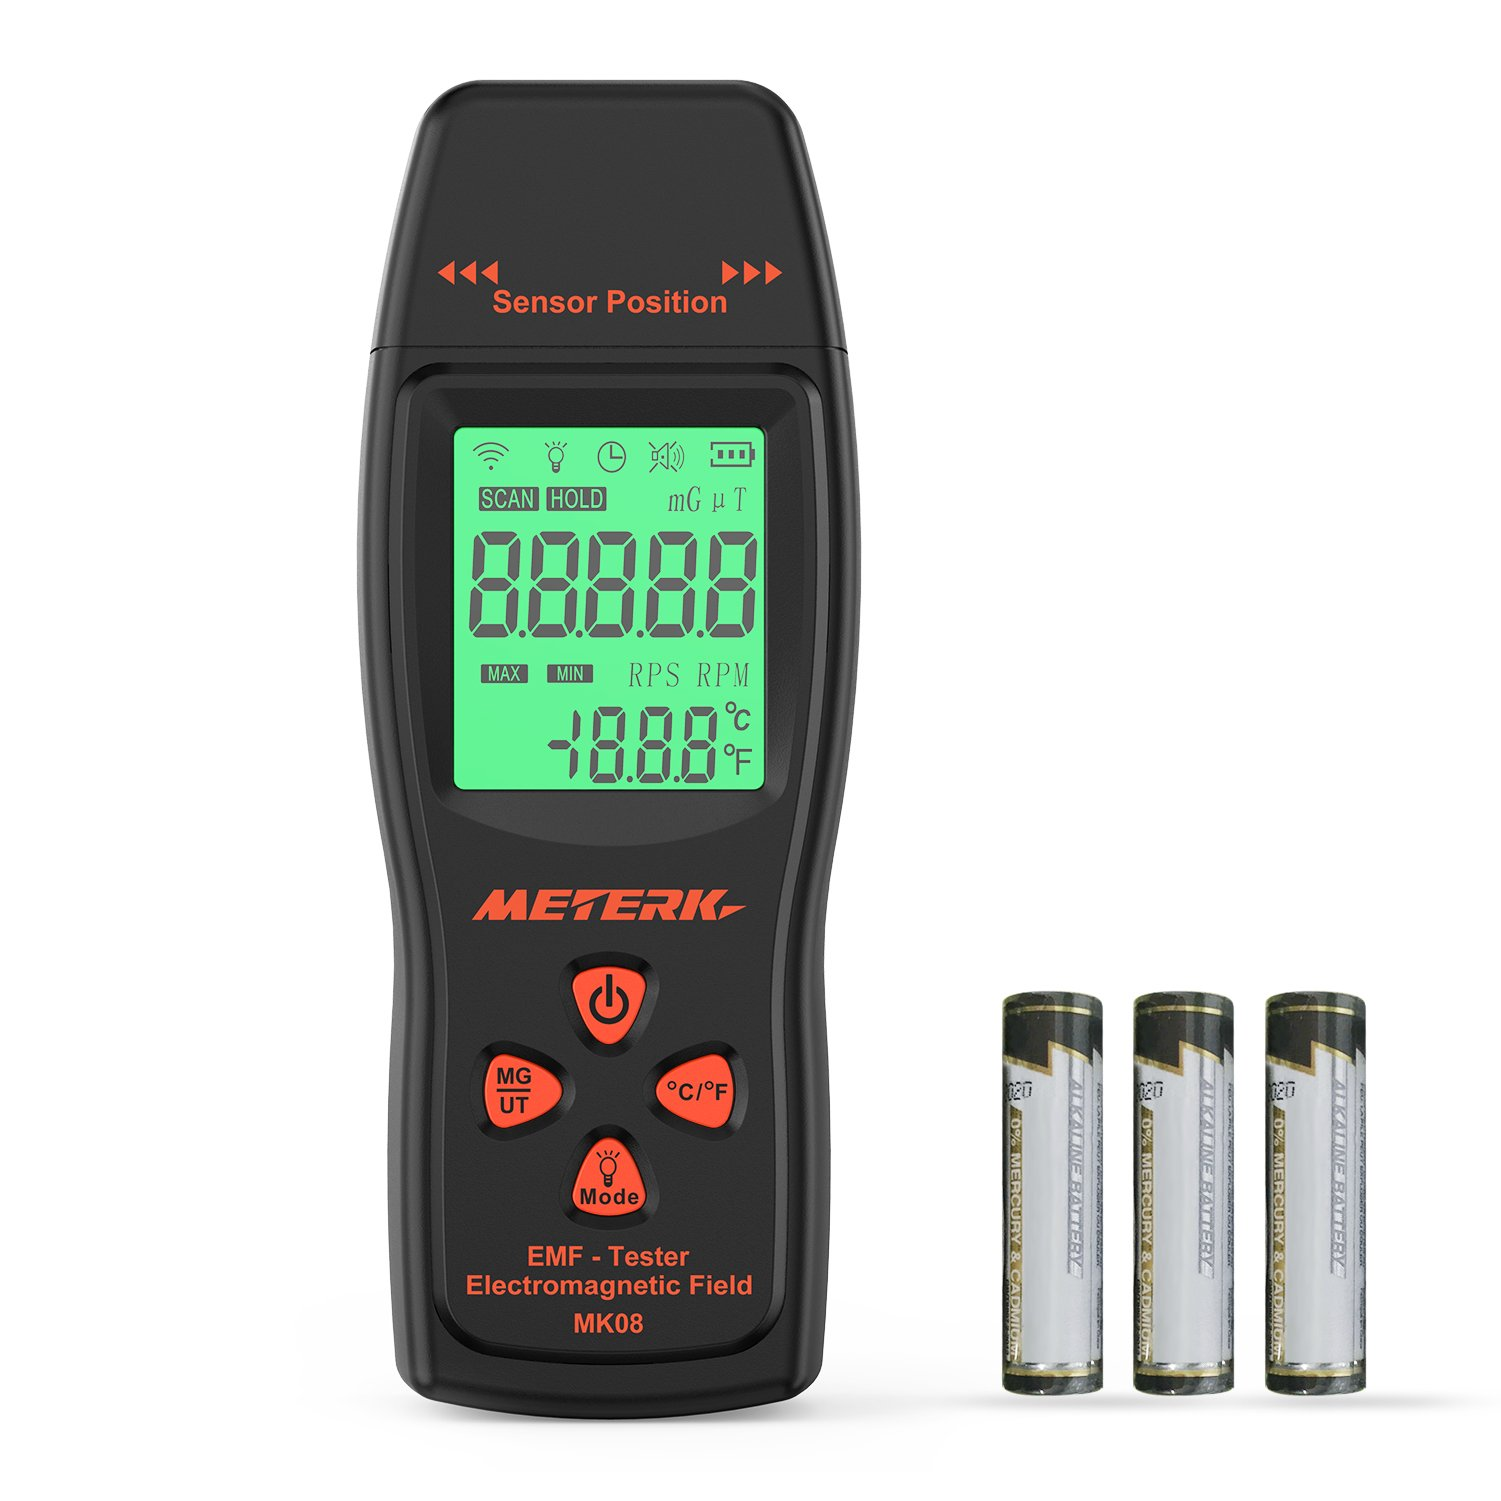 Meterk EMF Meter Electromagnetic Field Radiation Detector Handheld Mini Digital LCD EMF Detector Dosimeter Tester Counter by Meterk